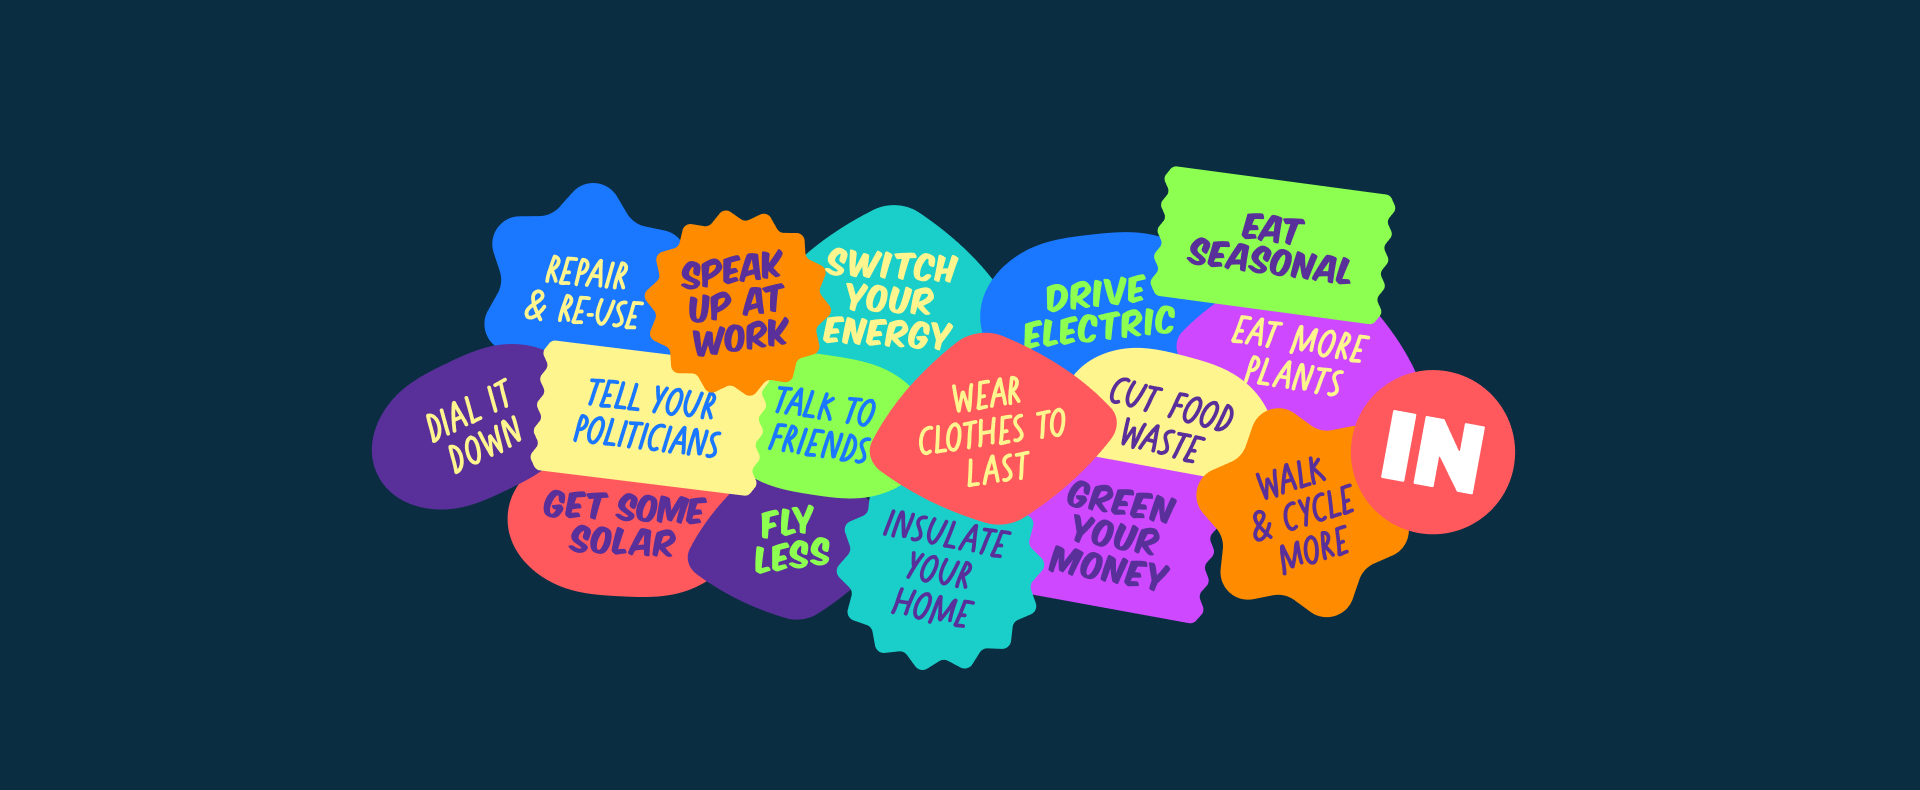 Badges of the 16 steps you can take to reduce your carbon pollution including Fly Less, Eat More Plants and Wear Less Clothes